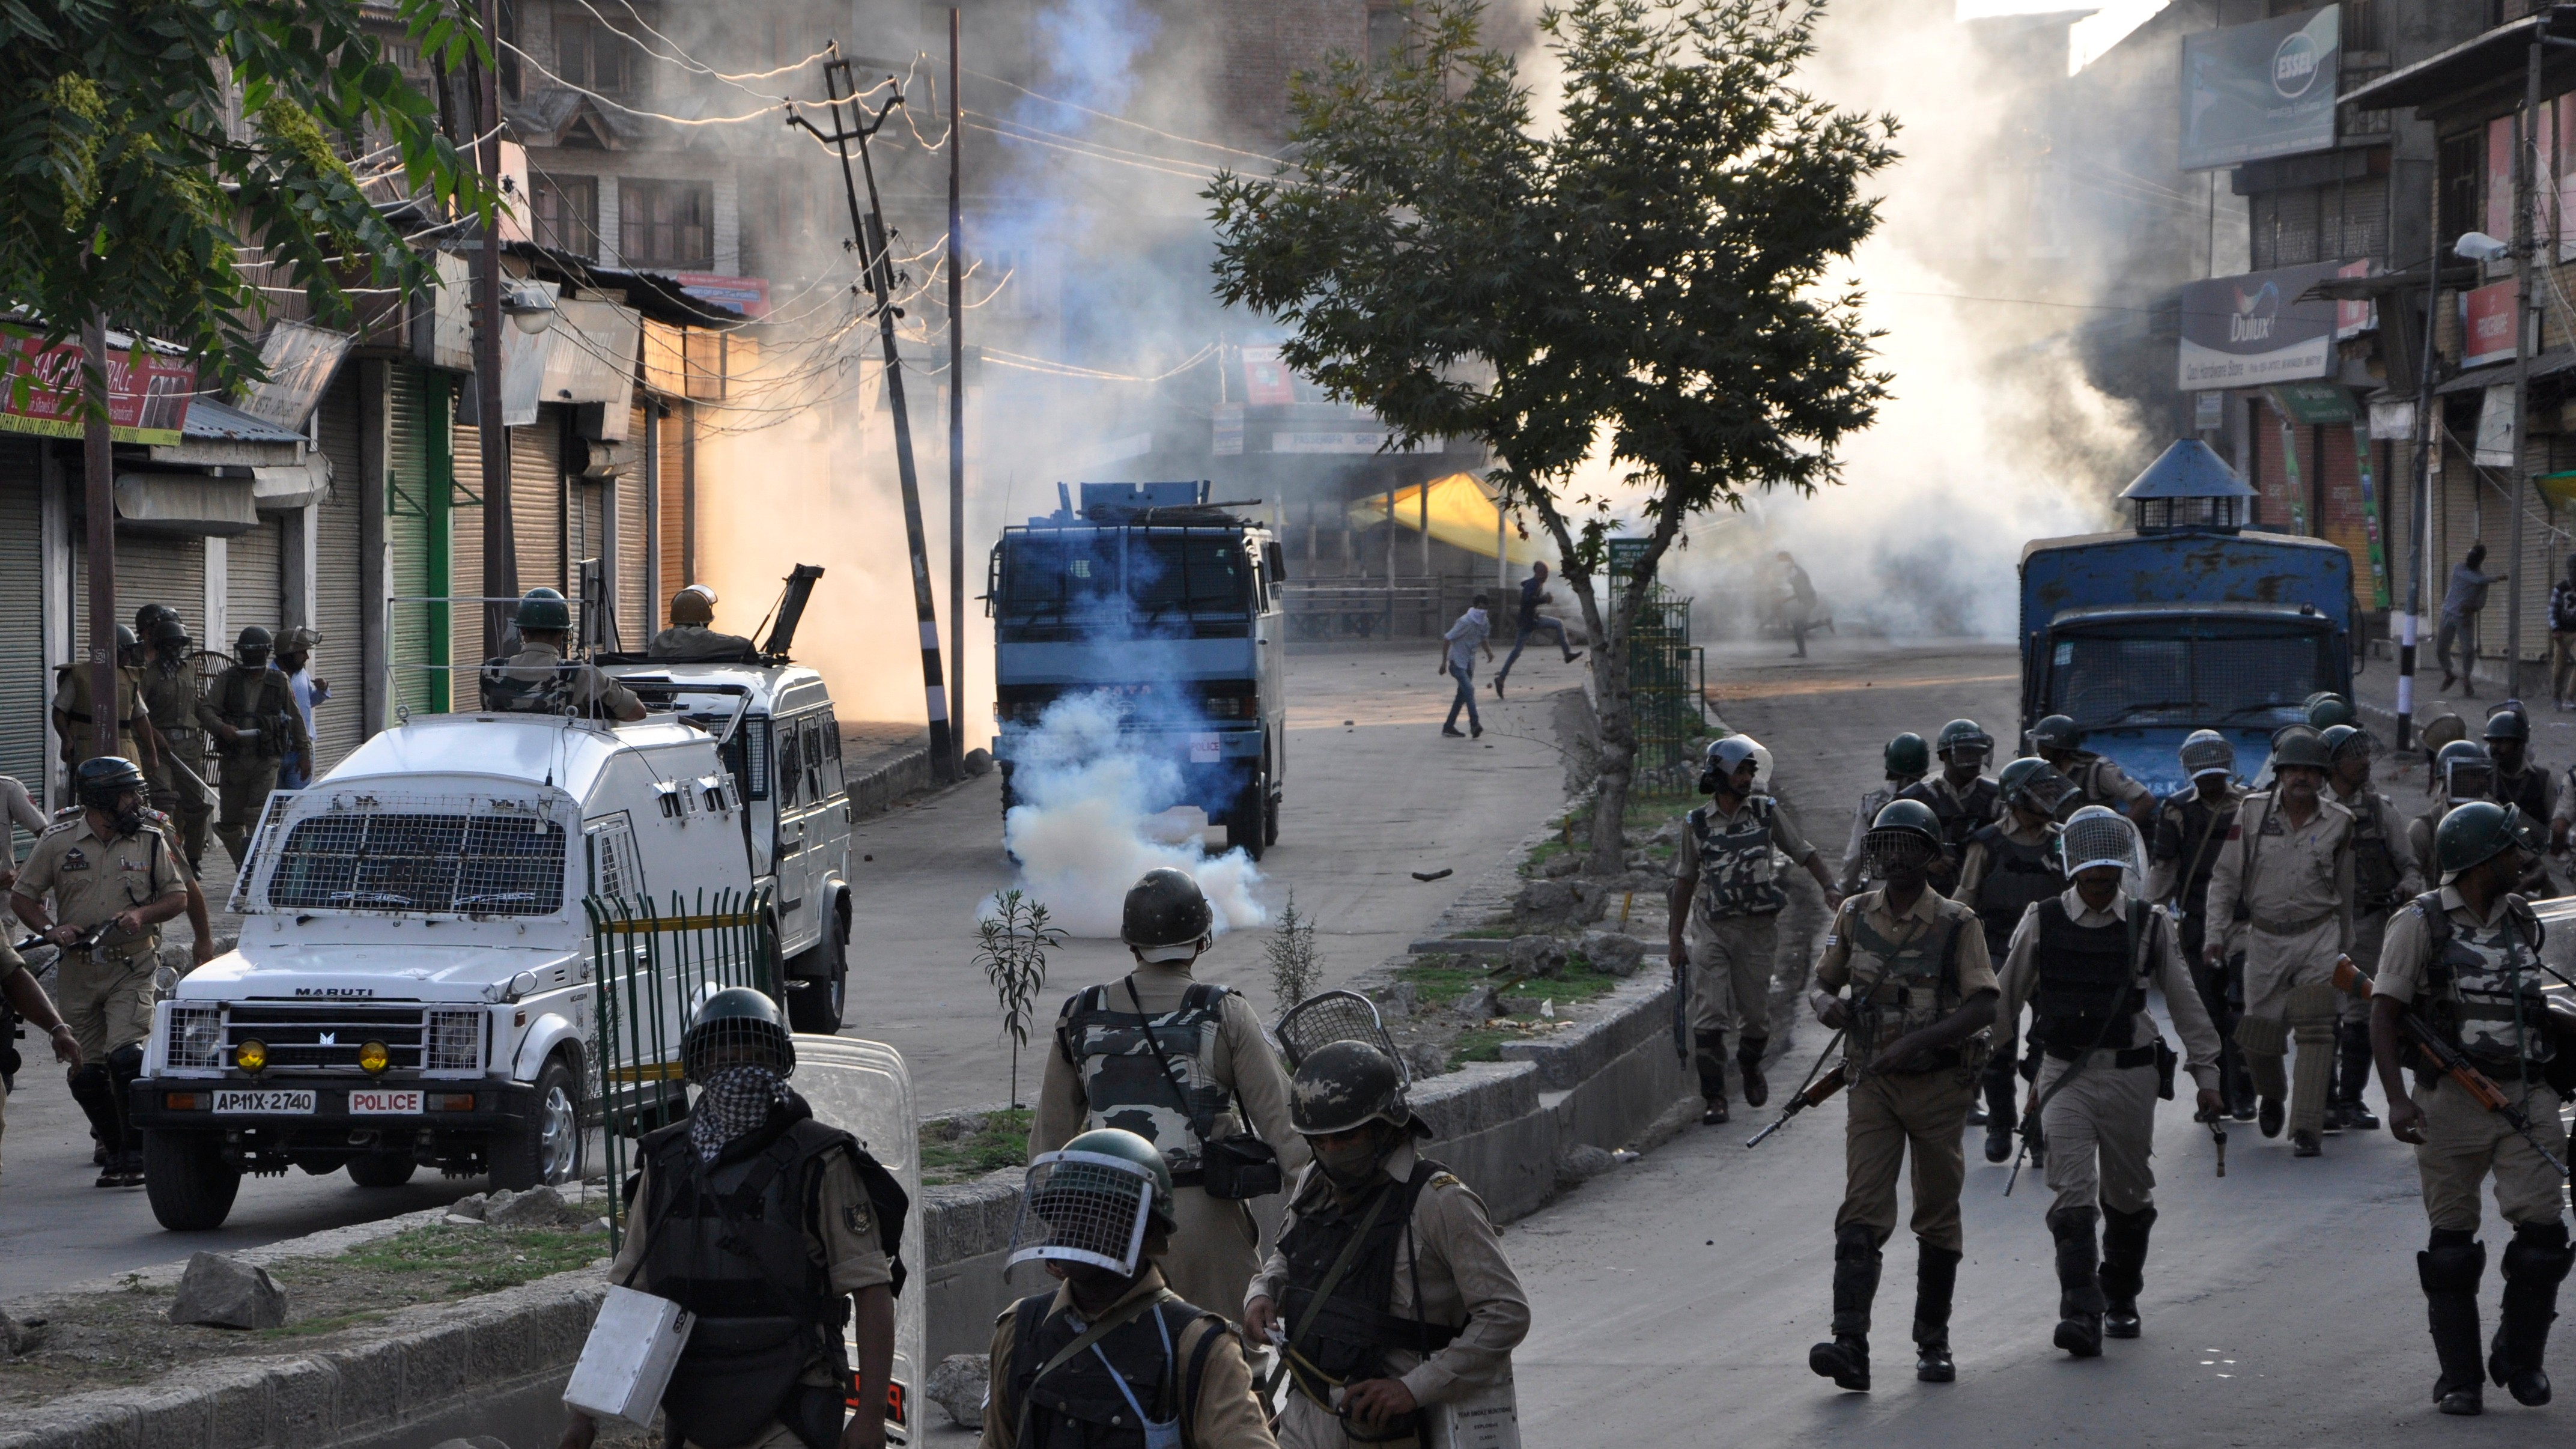 Two Months of Internet Blackouts Have Taken a Toll on Kashmir